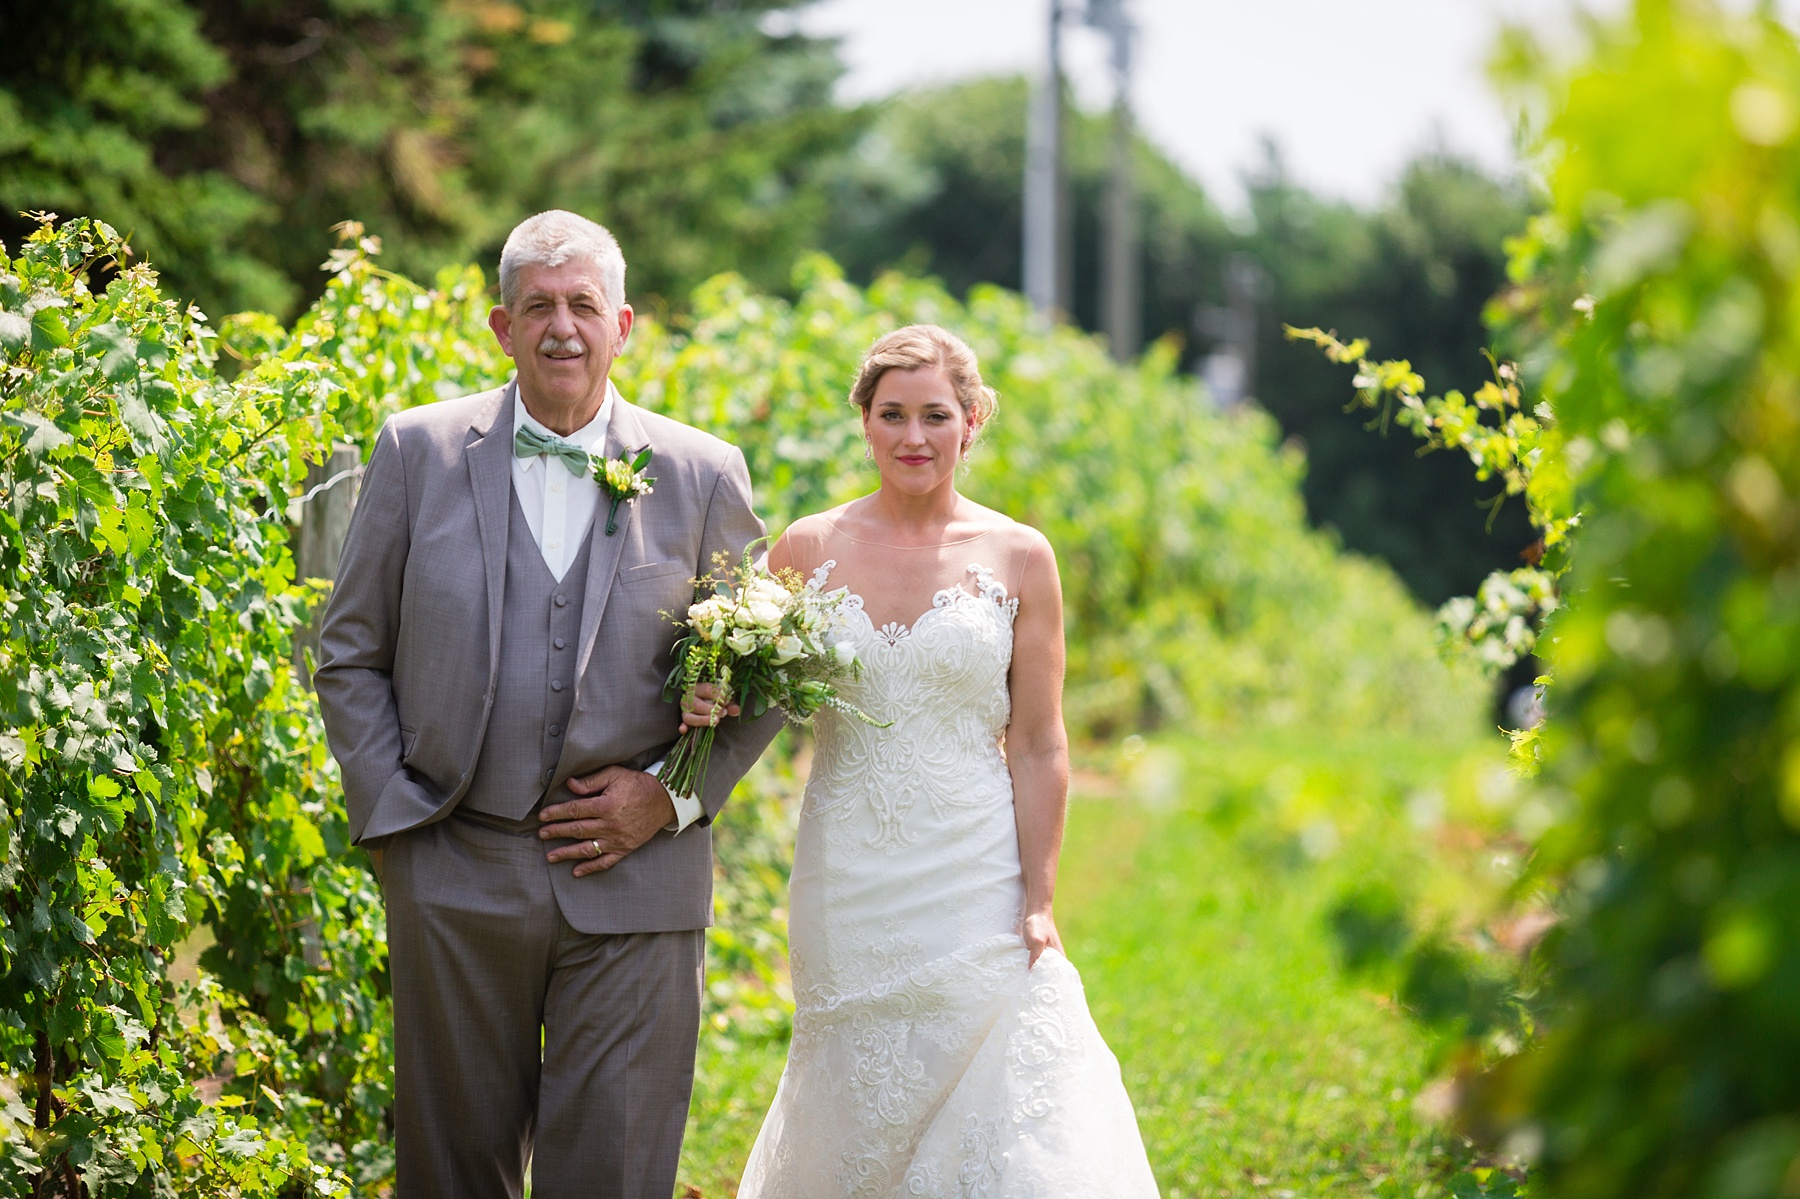 Brandon_Shafer_Photography_Lauren_Vasile_Ciccone_Vineyard_Suttons_Bay_Wedding_0016.jpg